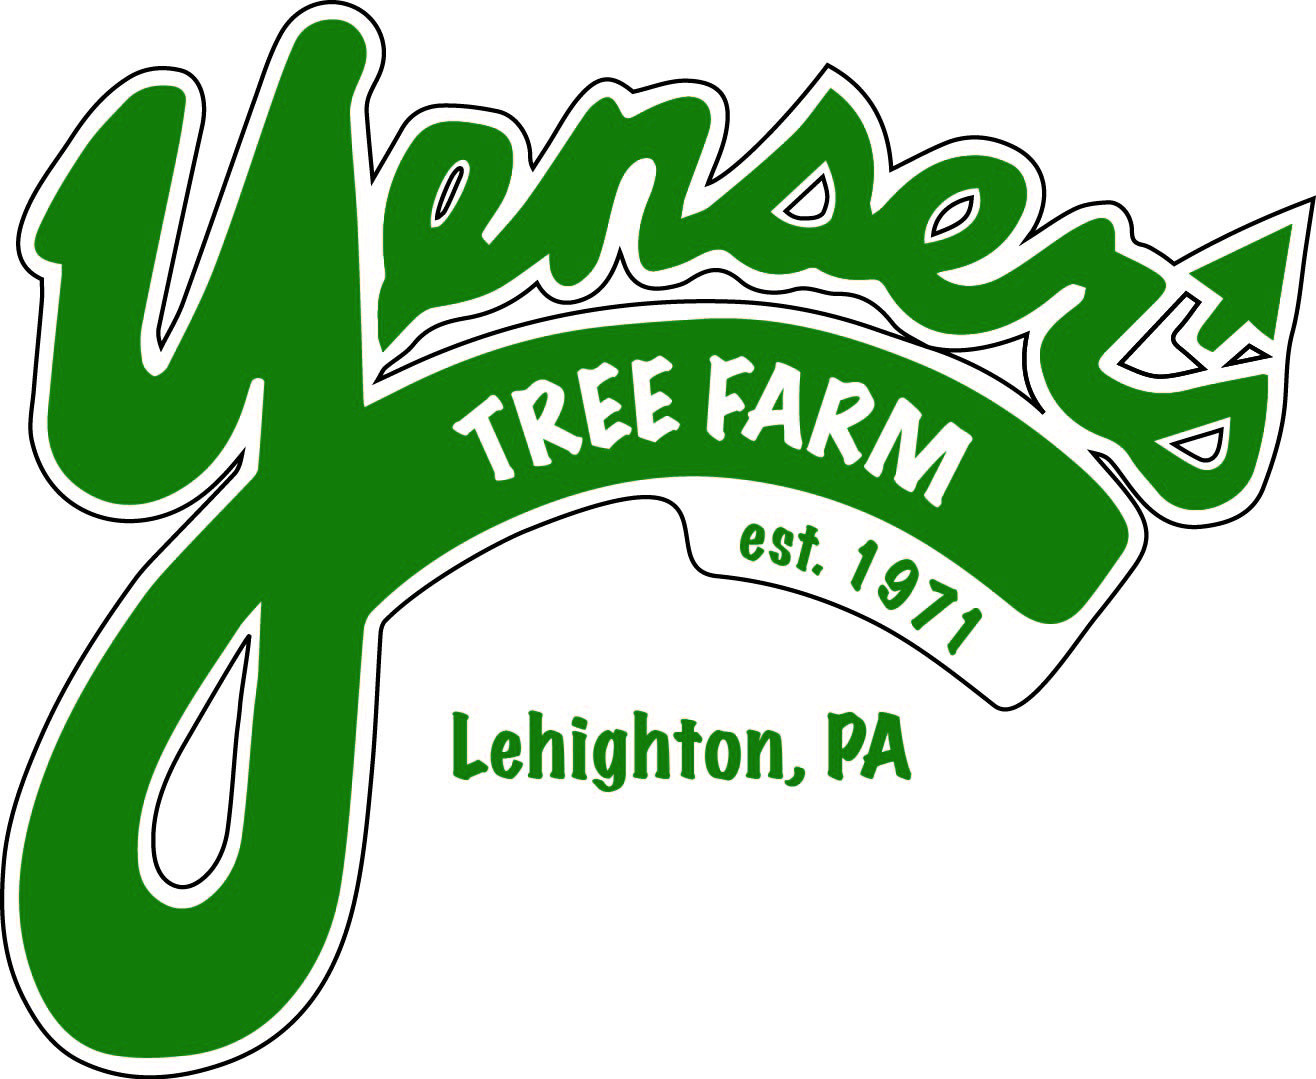 Yensers Tree Farm.jpg